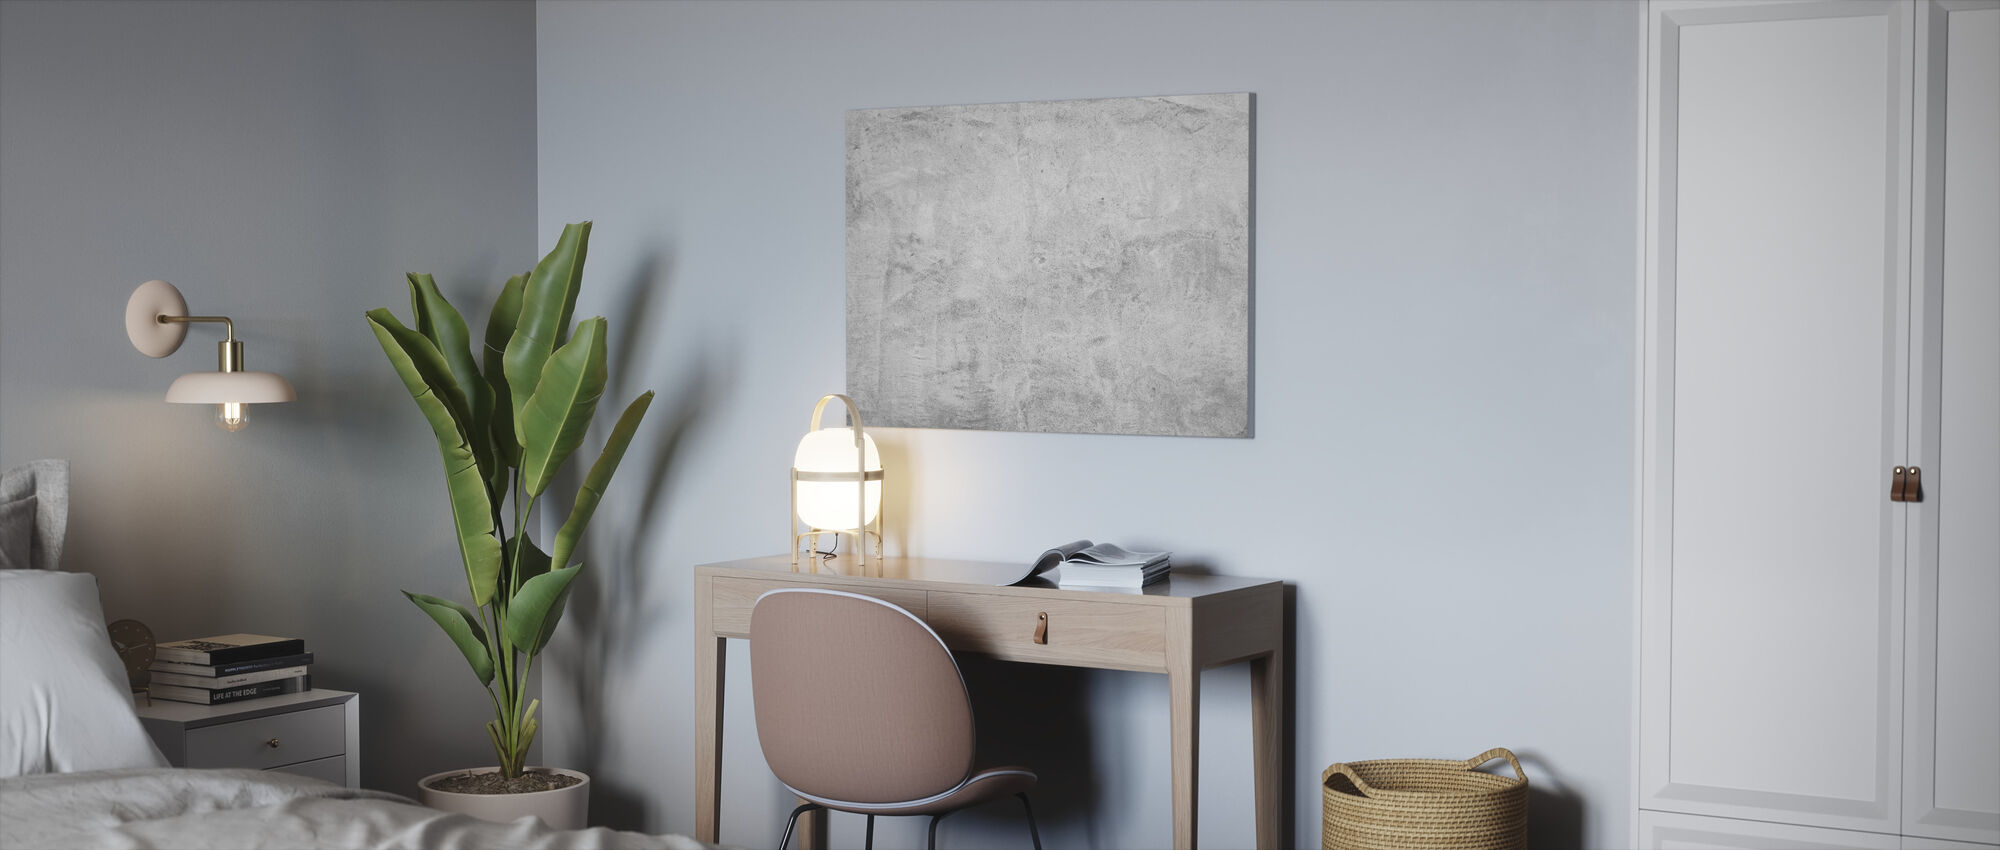 Scrubbed Concrete Wall - Canvas print - Office